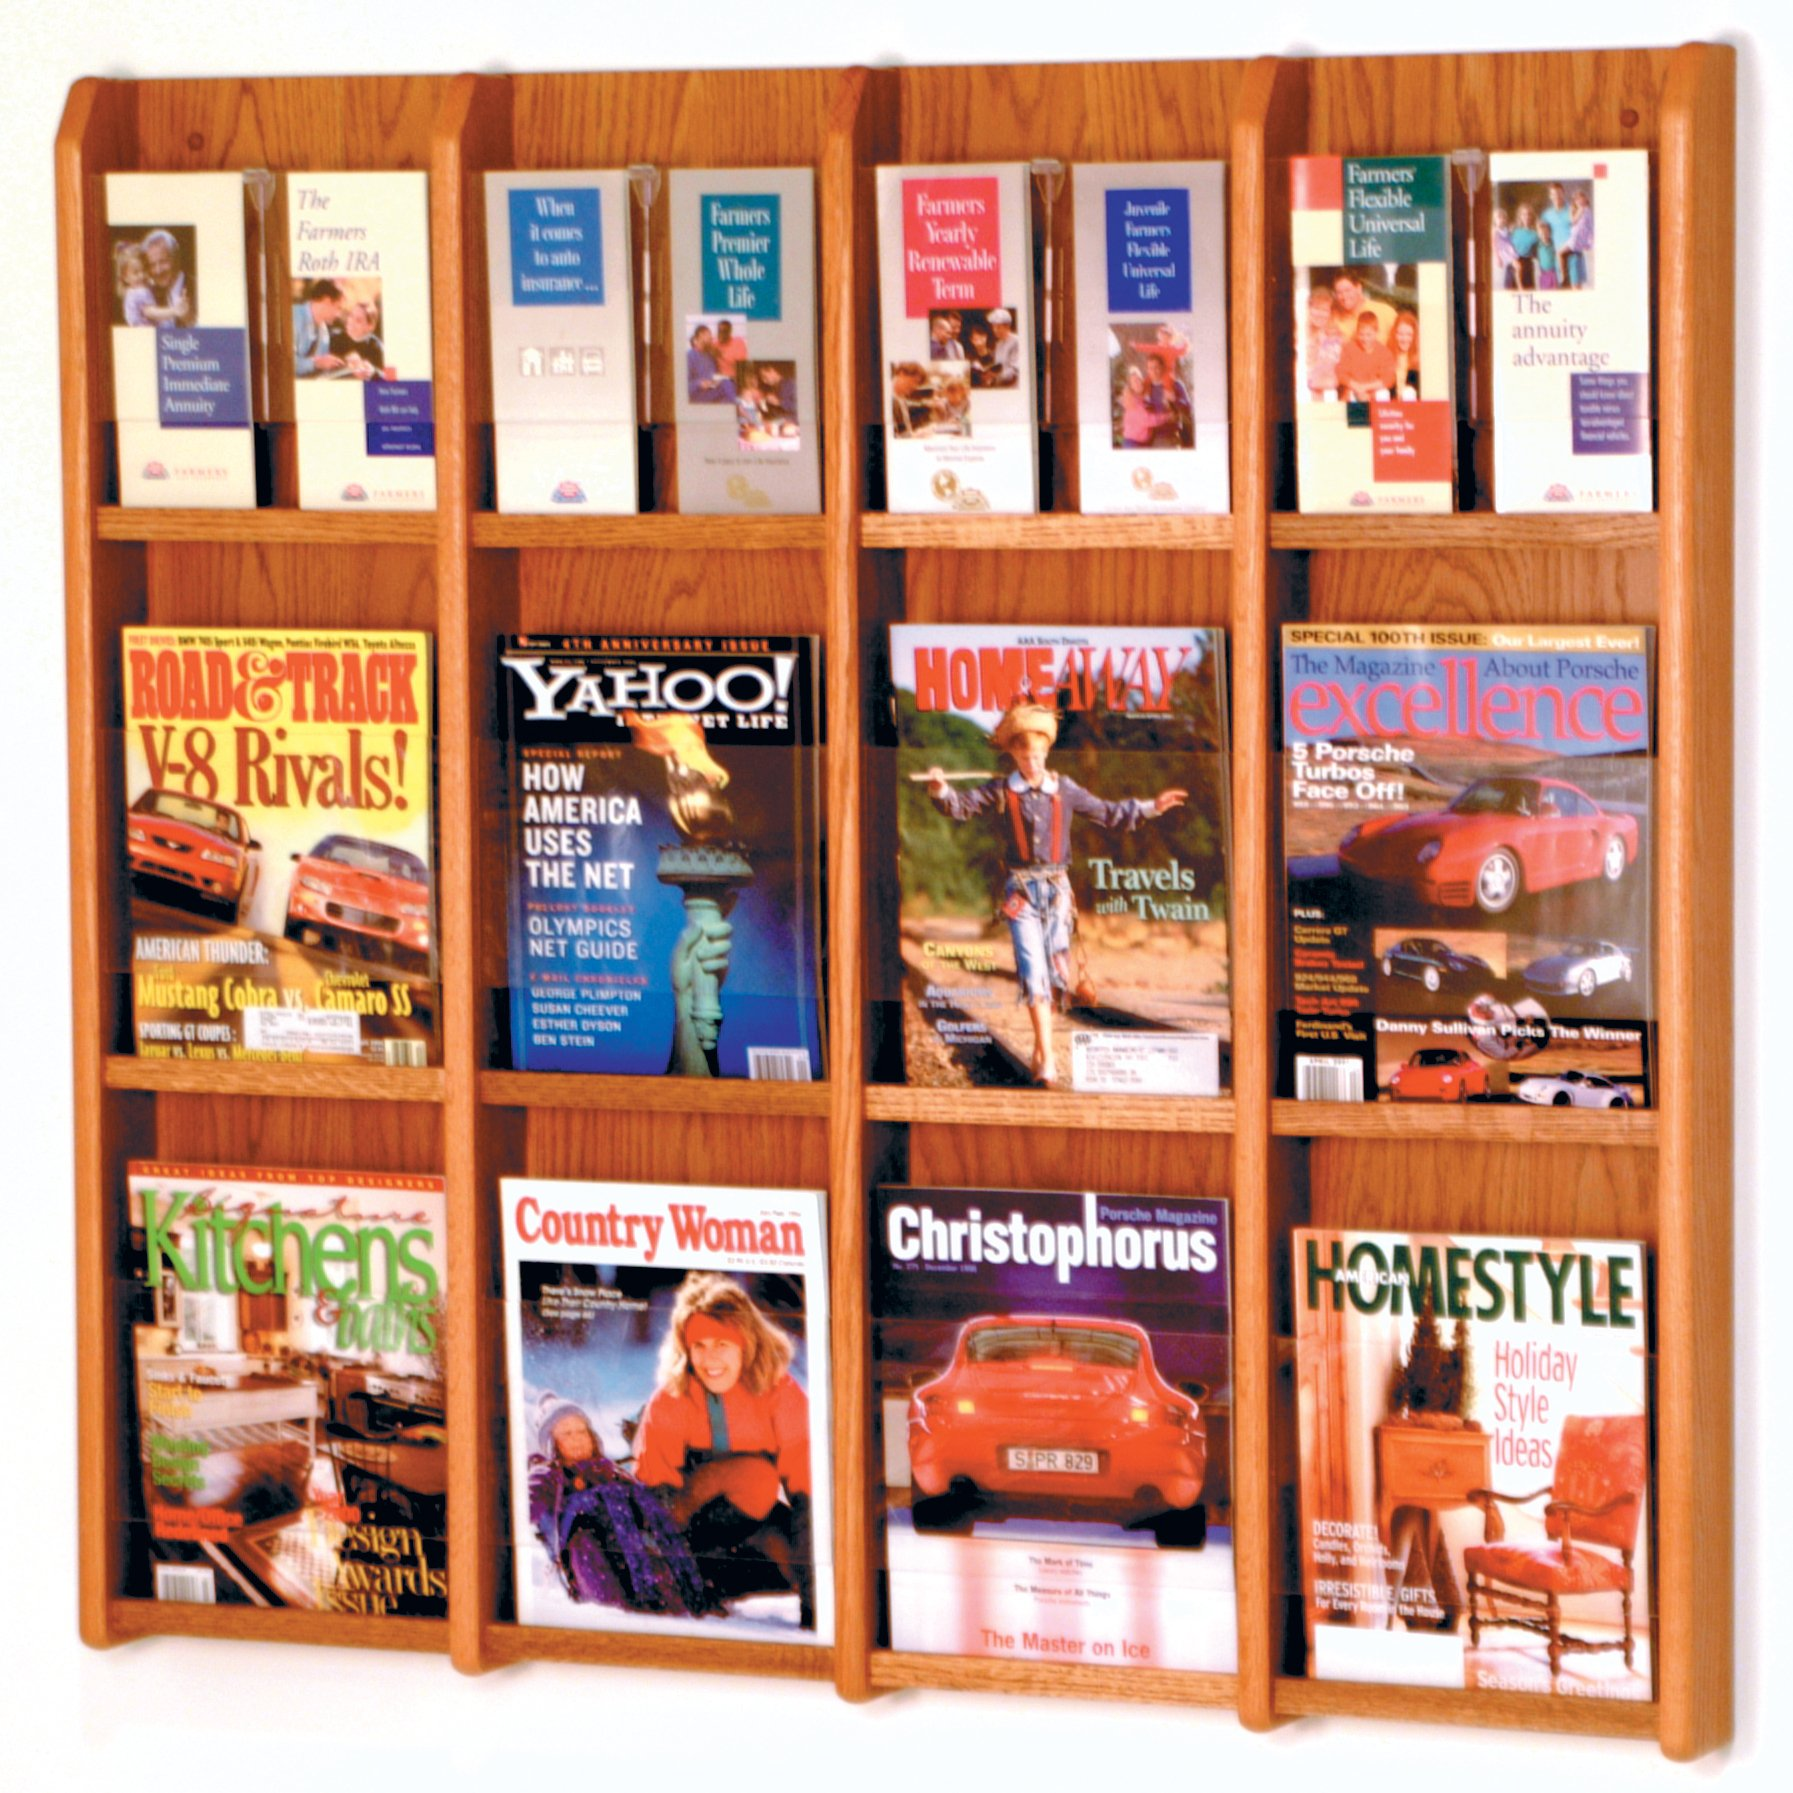 Wooden Mallet 12-Magazine/24-Brochure Divulge Wall Display with Brochure Inserts, Medium Oak by Wooden Mallet (Image #1)